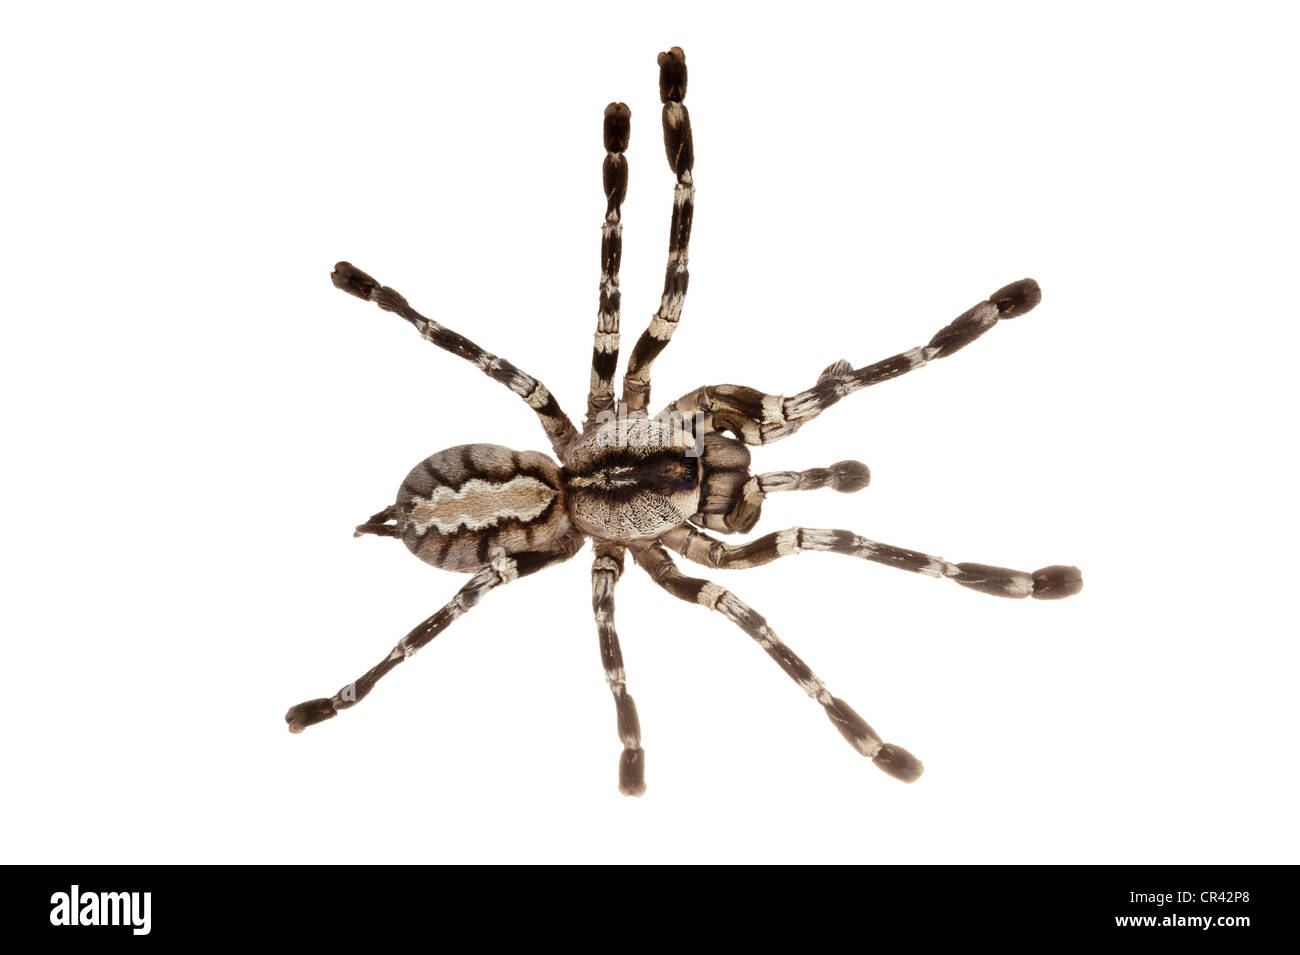 Ornementales frangée Tarantula (Poecilotheria ornata) Photo Stock